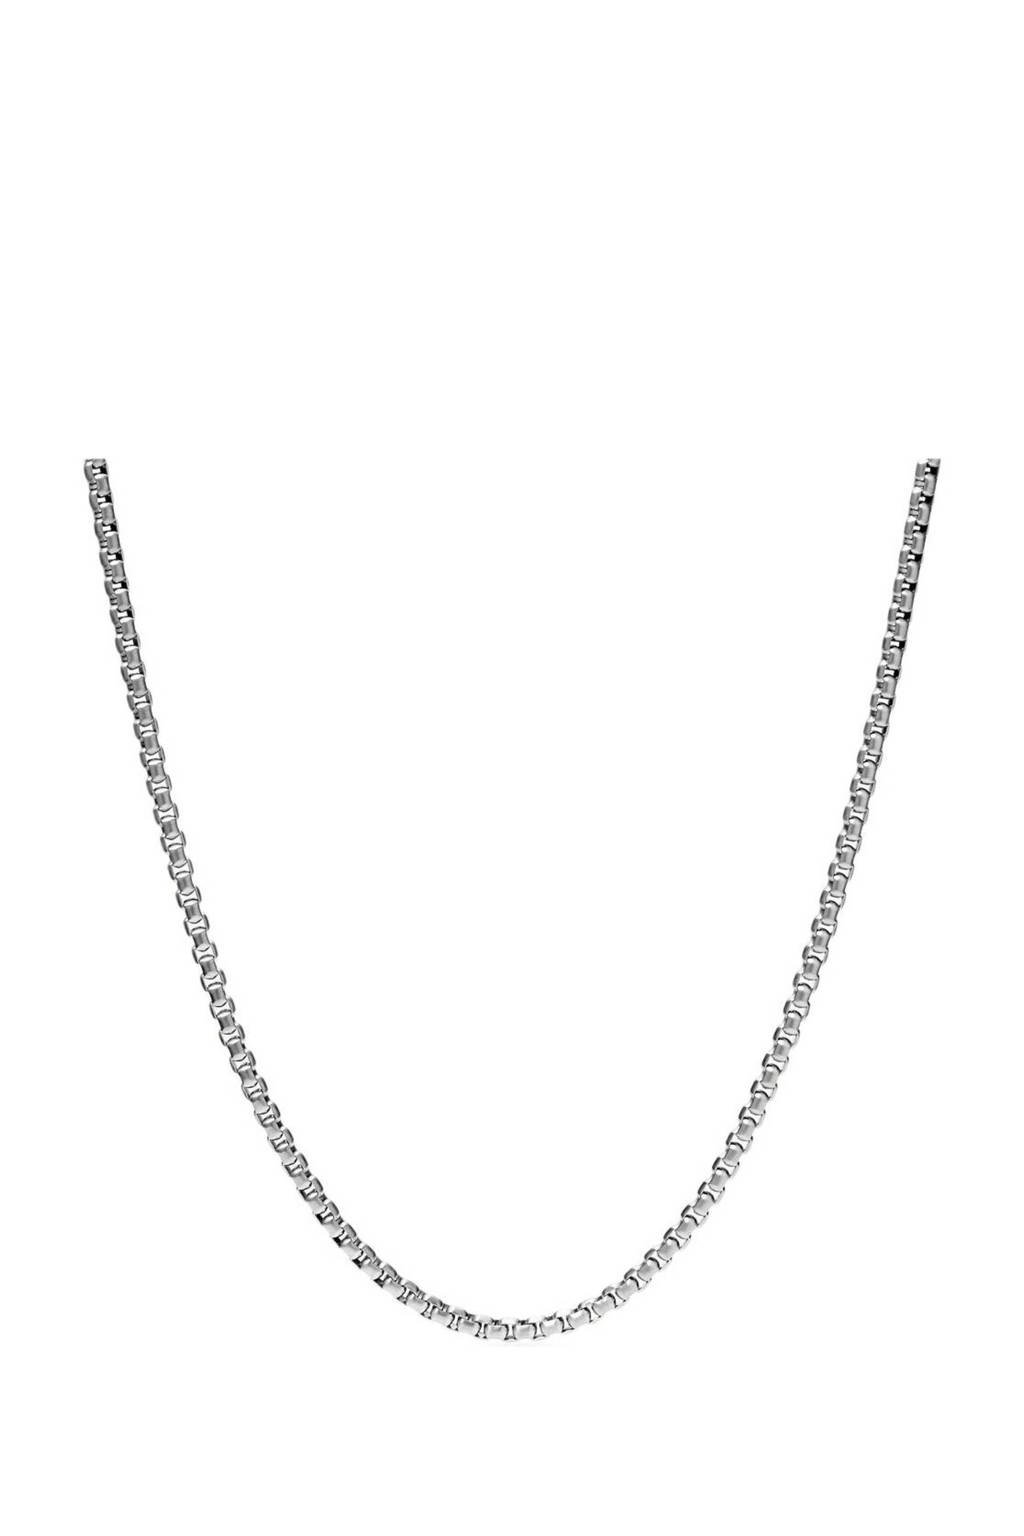 Fossil collier JF03723040 Vintage Casual zilver, Zilver